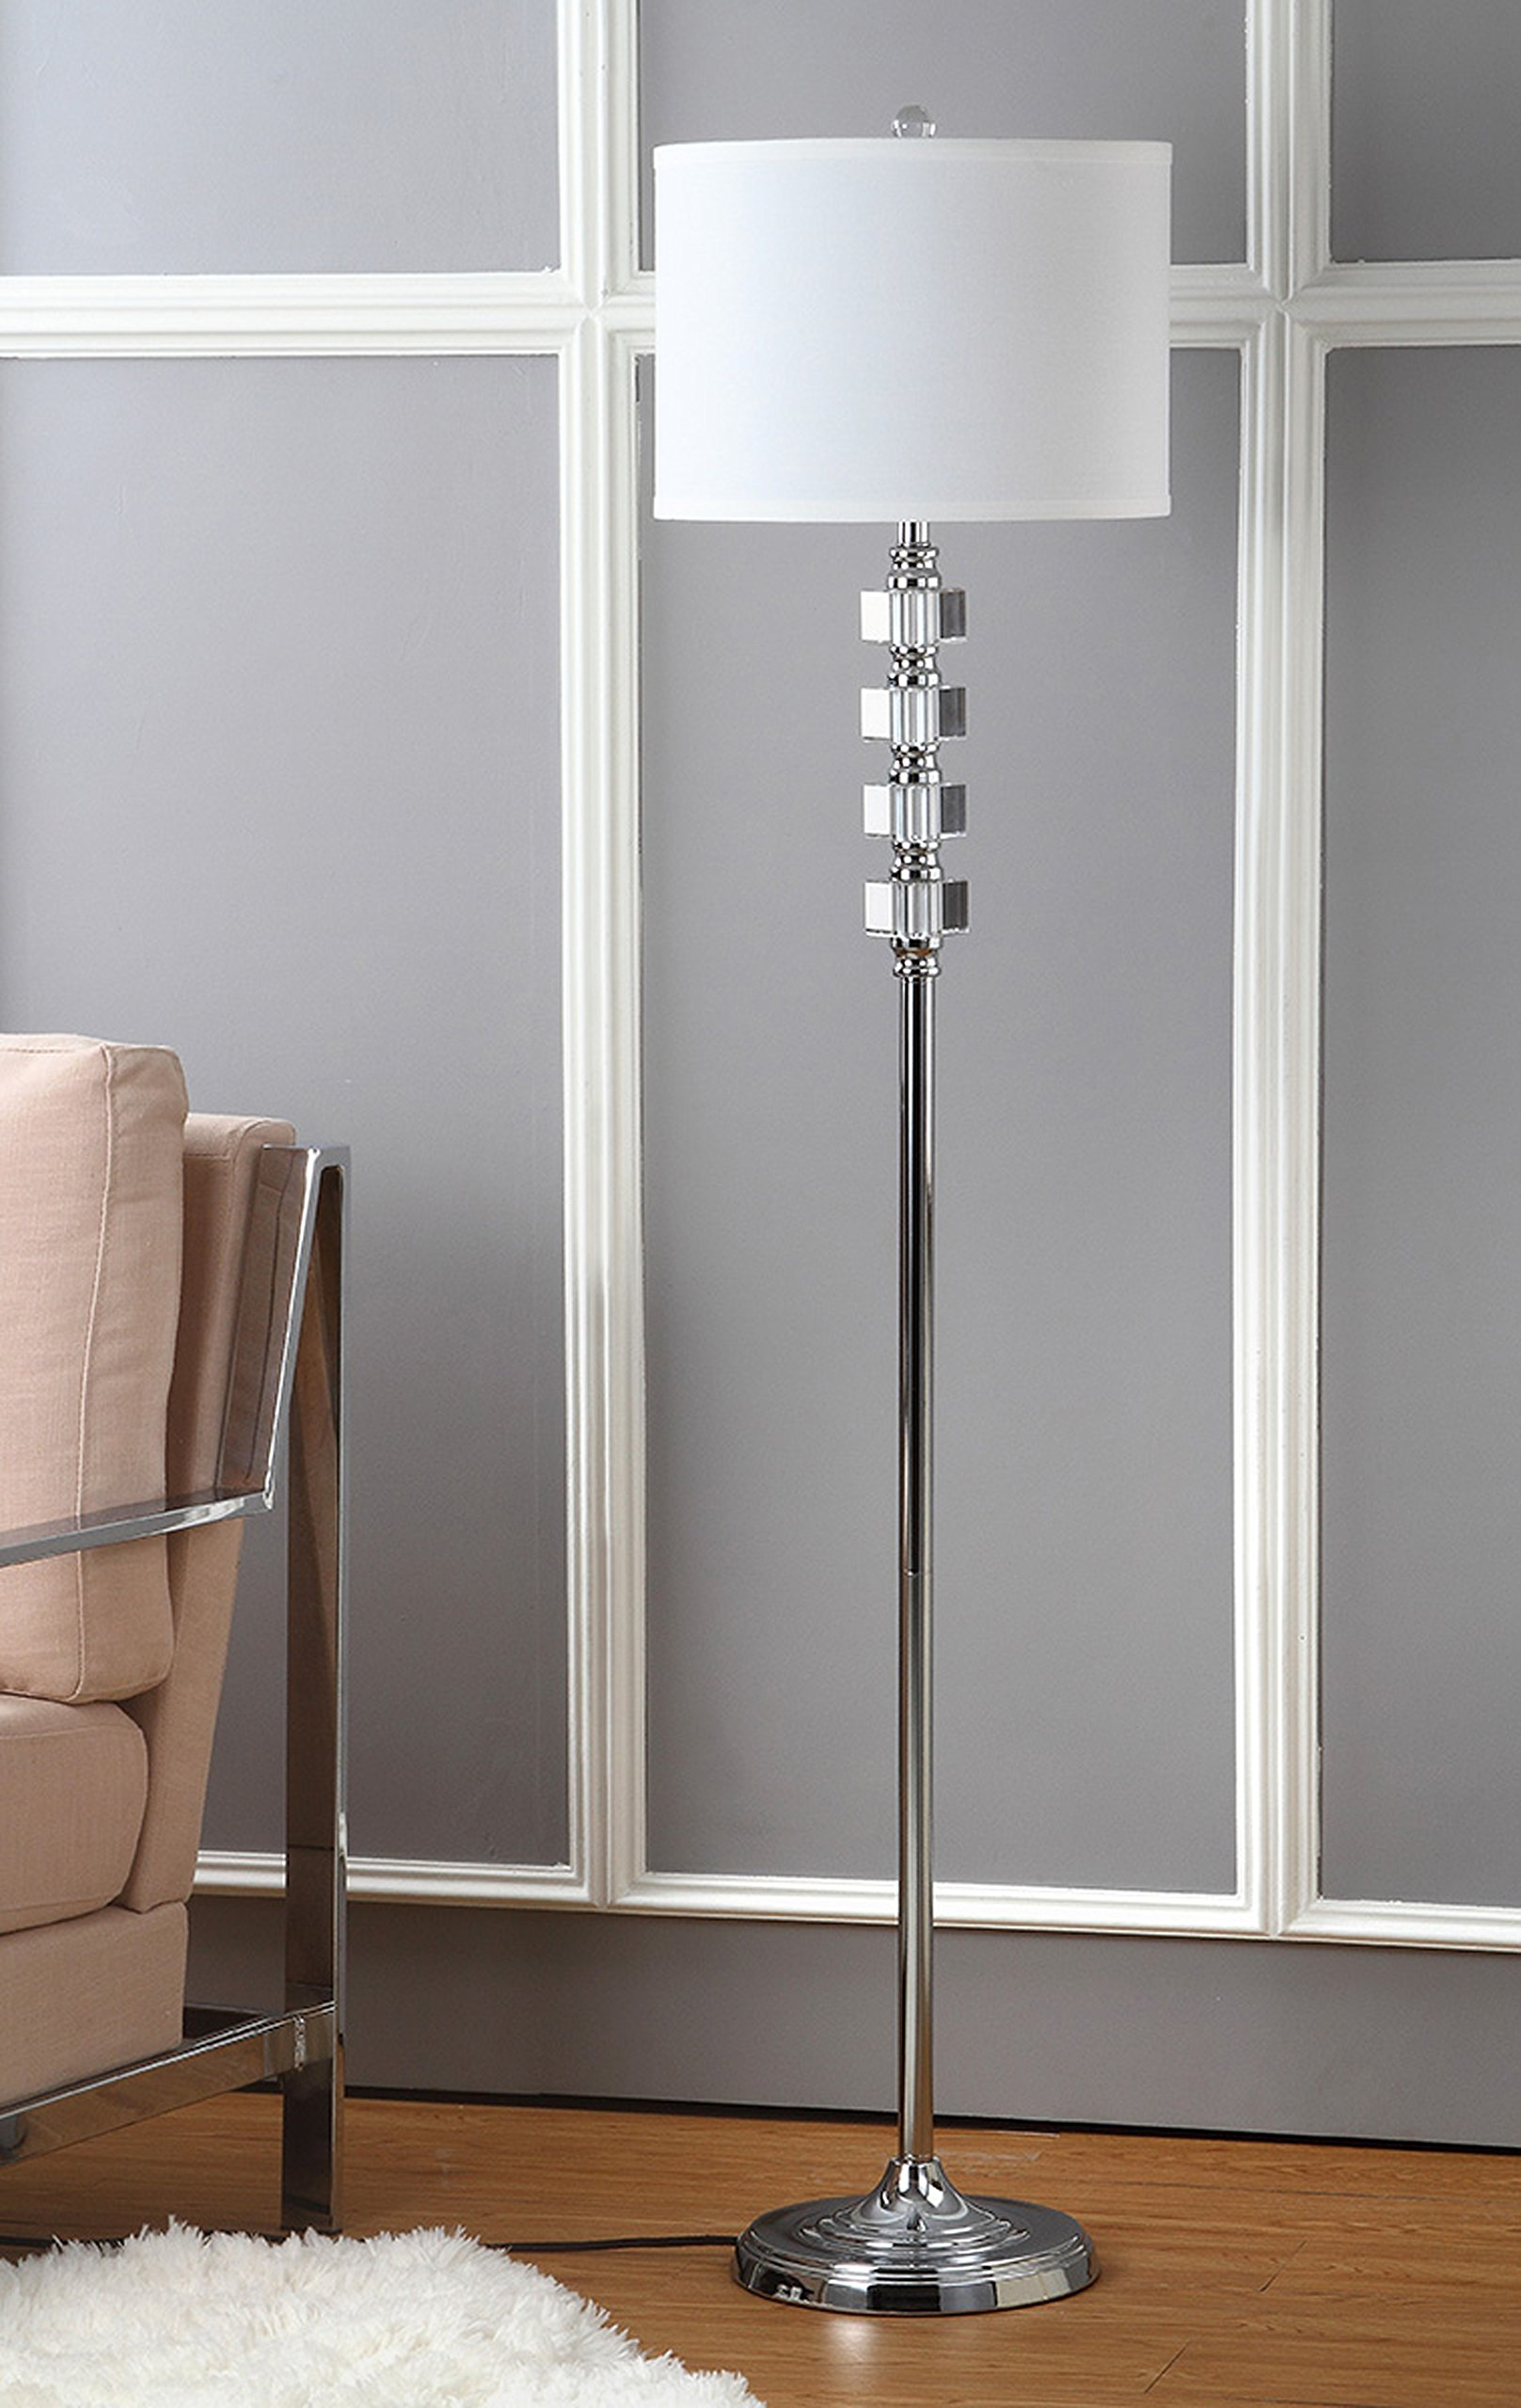 Safavieh Lighting Collection Lombard Street Clear 60.25-inch Floor Lamp by Safavieh